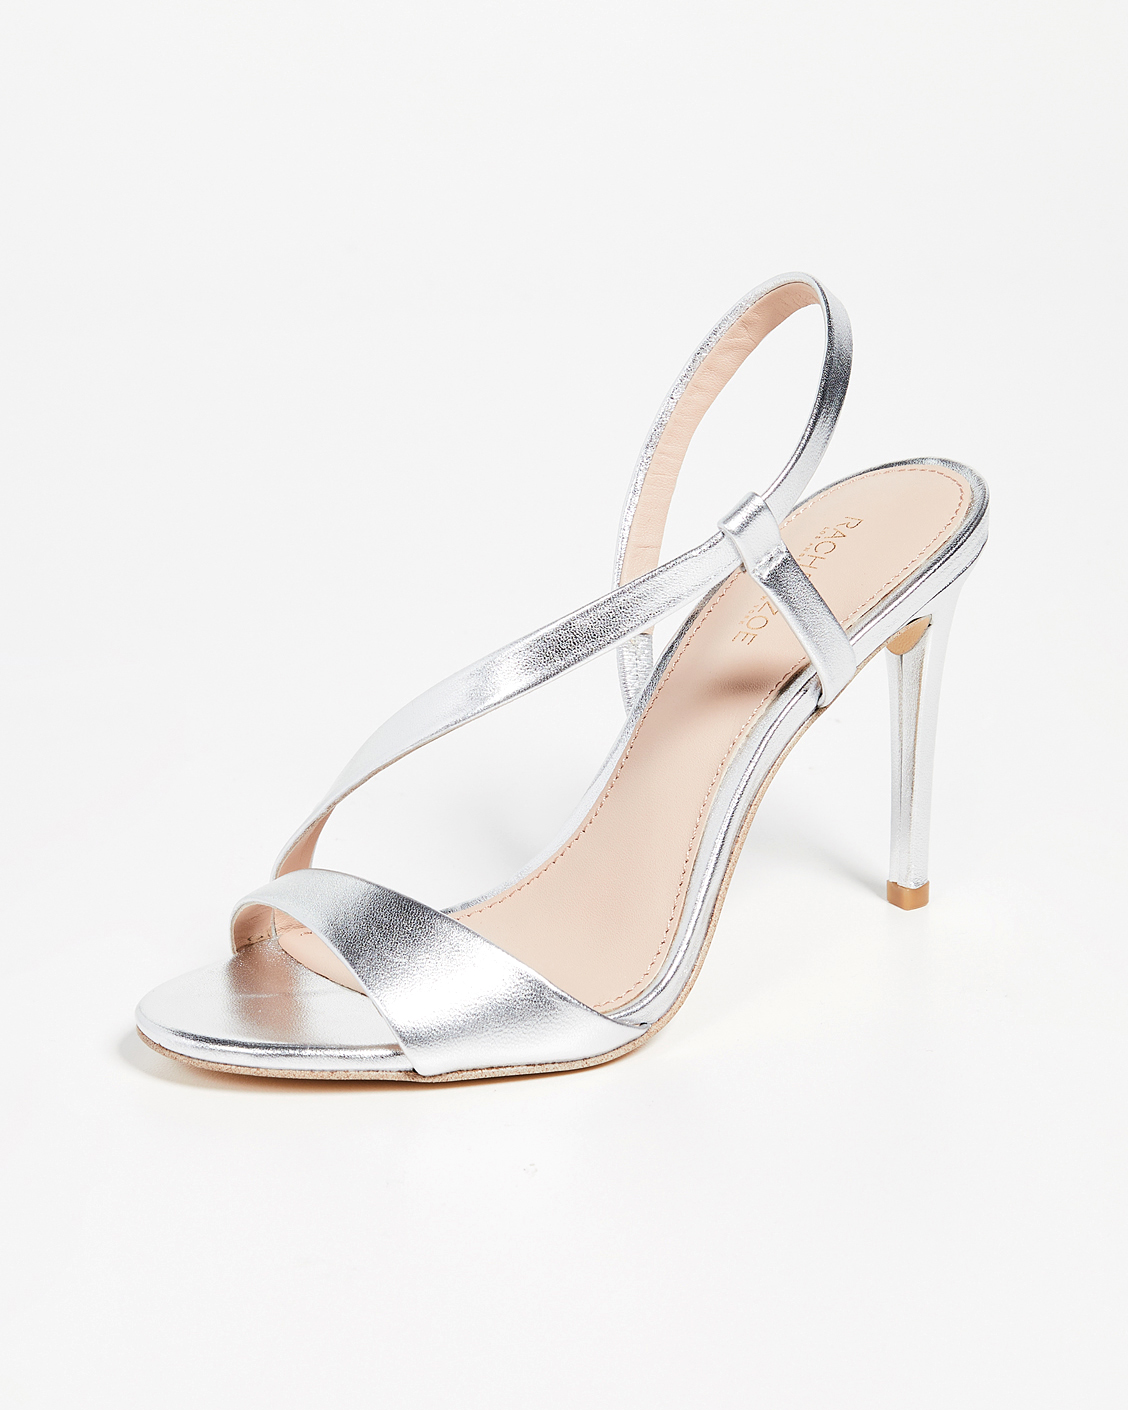 asymmetrical silver sandals bridesmaid shoes